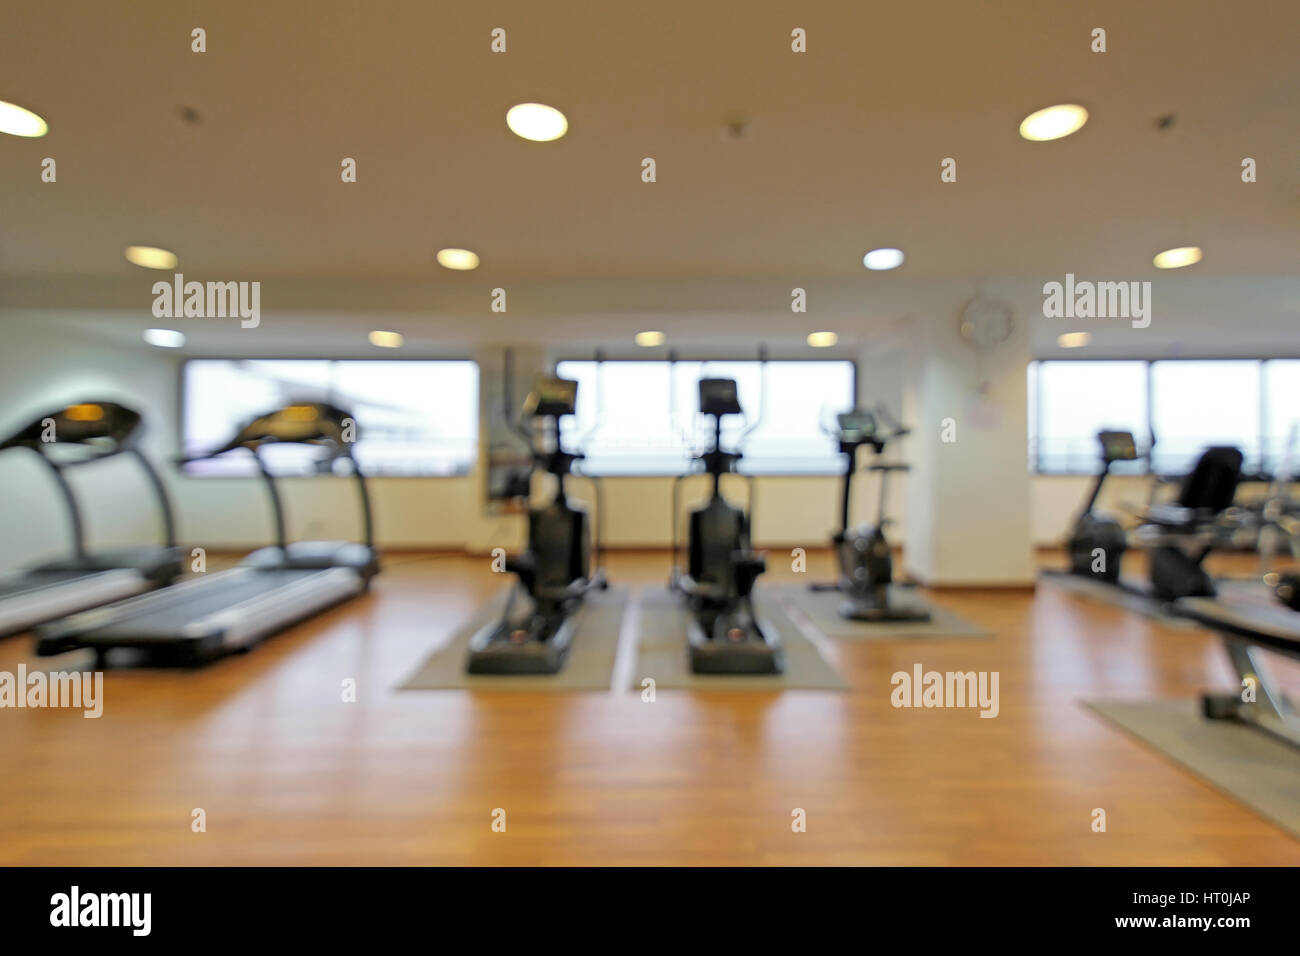 Abstract blur fitness room interior for background stock photo